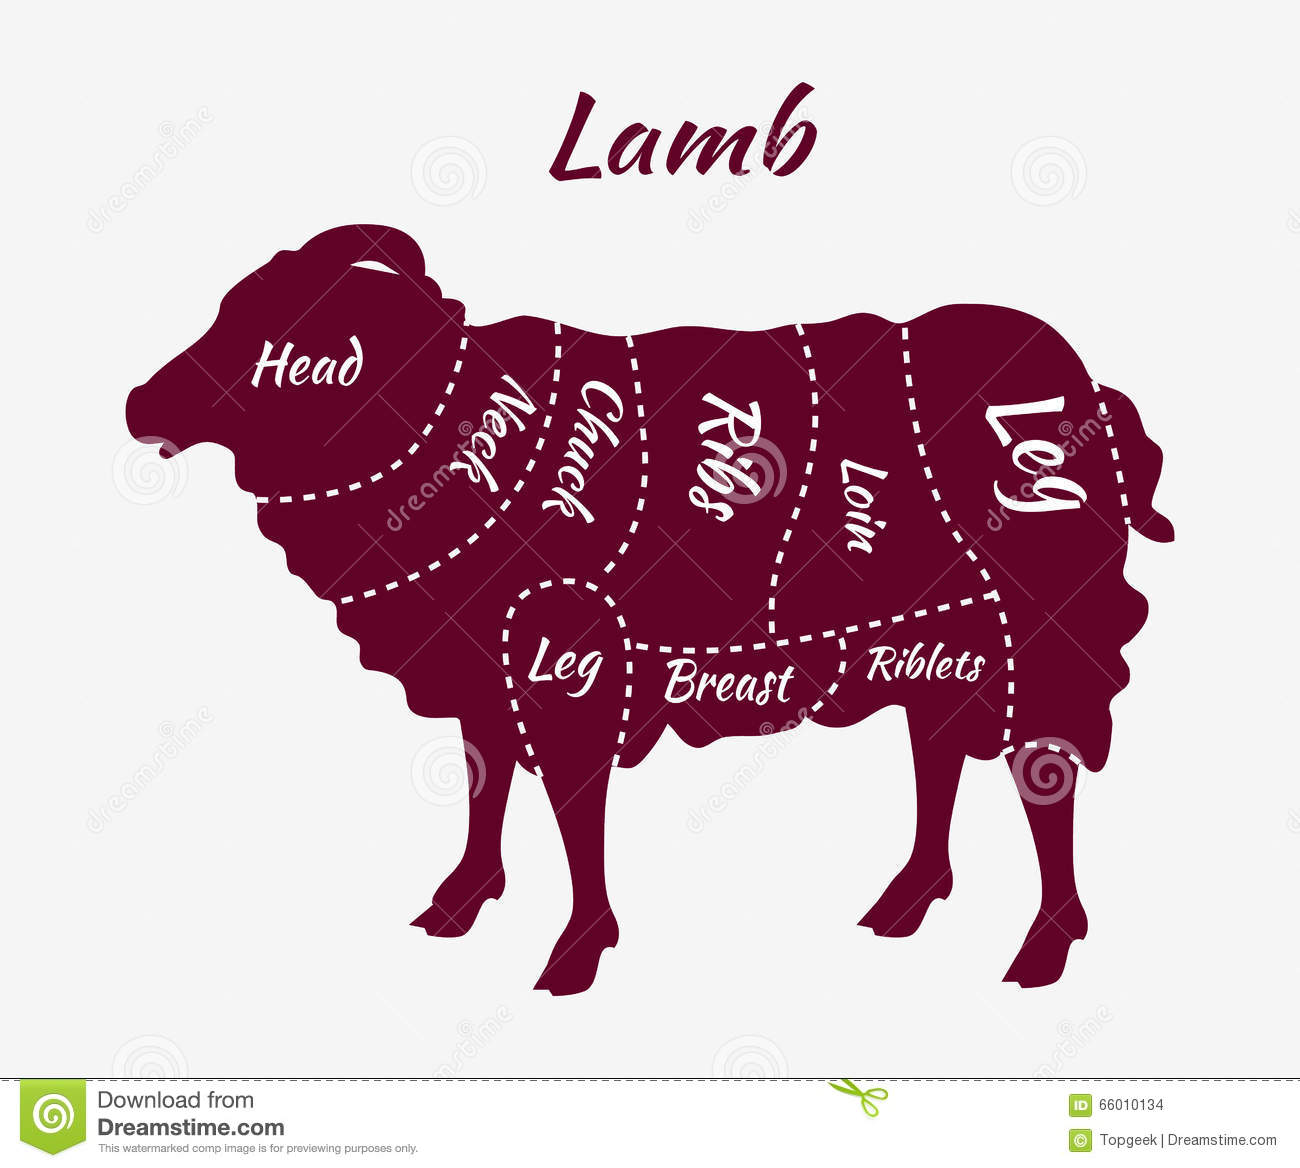 Cuts Of Lamb Or Mutton Diagram